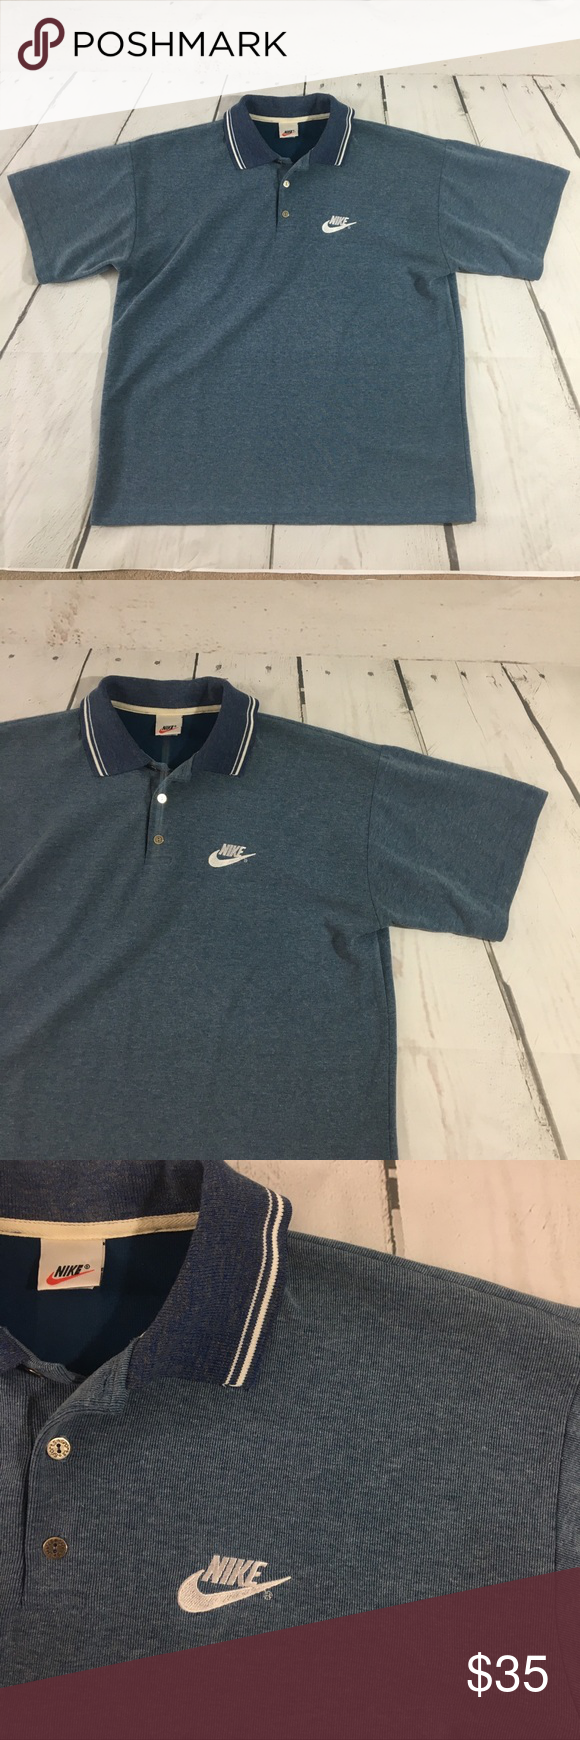 Vintage Nike Polo T Shirt 80s 90s Made In Usa Made In The Usa Vintage Lined Nike Polo Shirt Nike Swoosh Size Xl Grea Polo T Shirts Nike Polo Shirts Nike